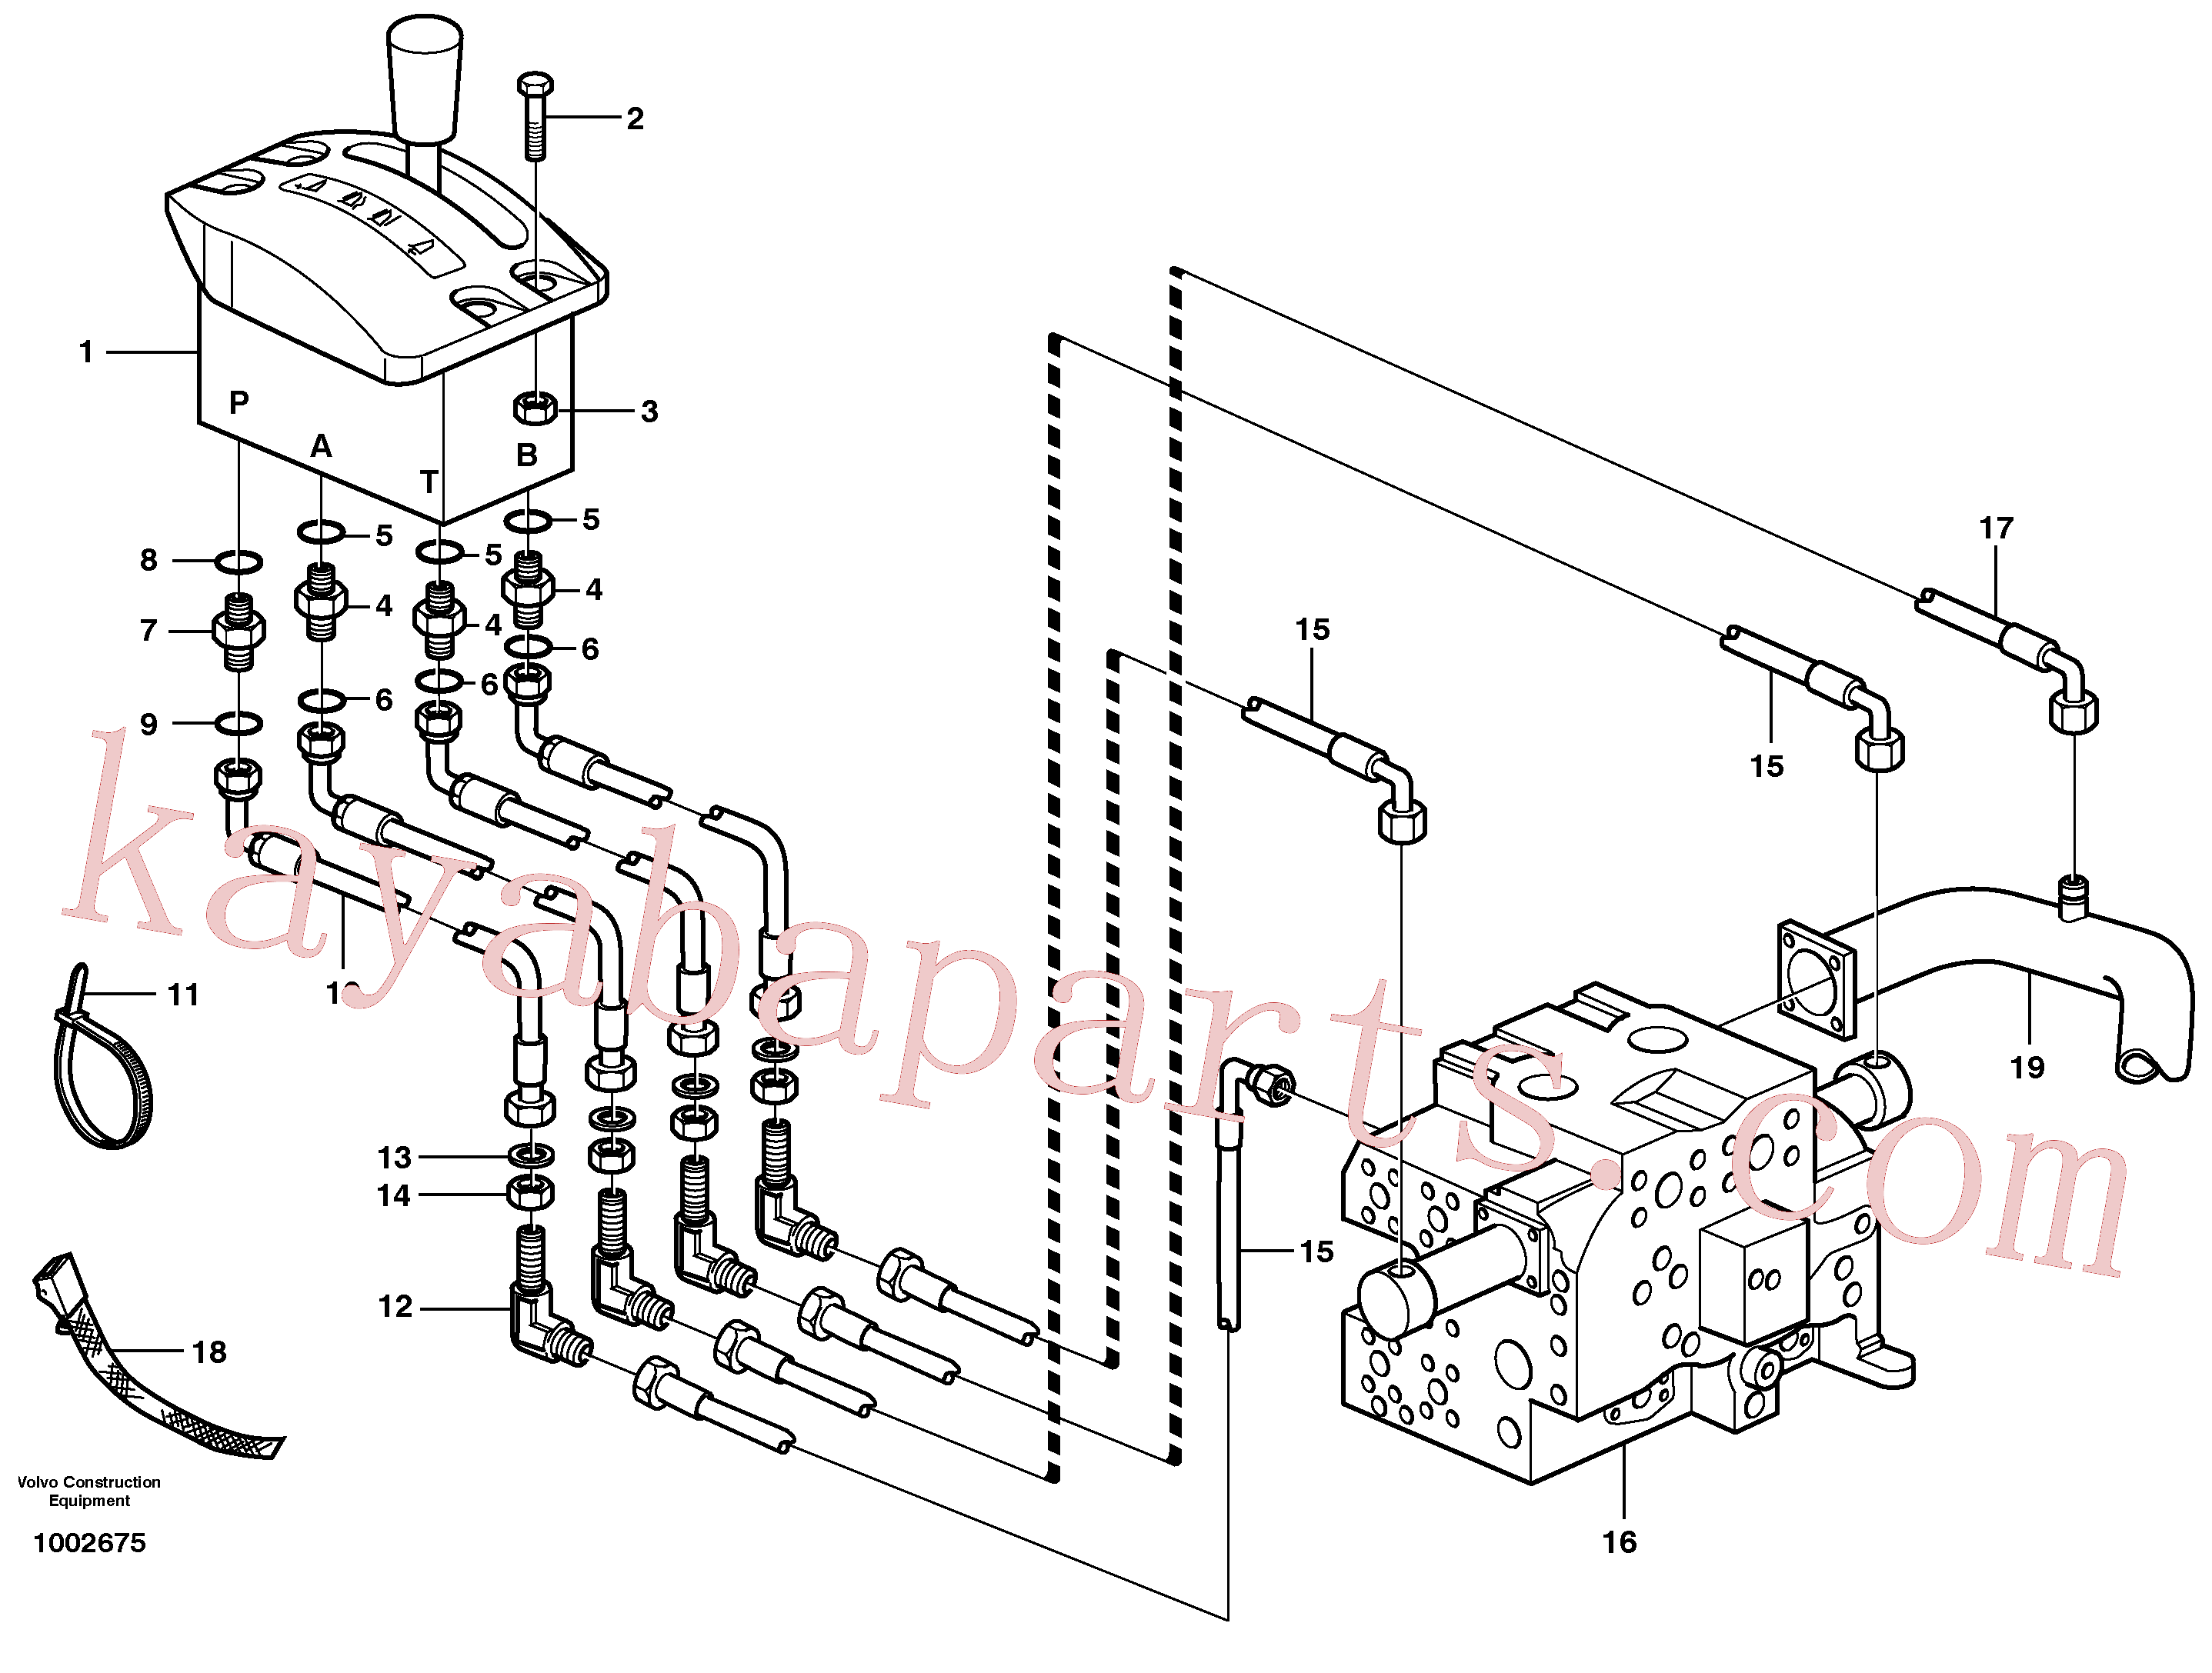 VOE945653 for Volvo Servo system, tipper control(1002675 assembly)